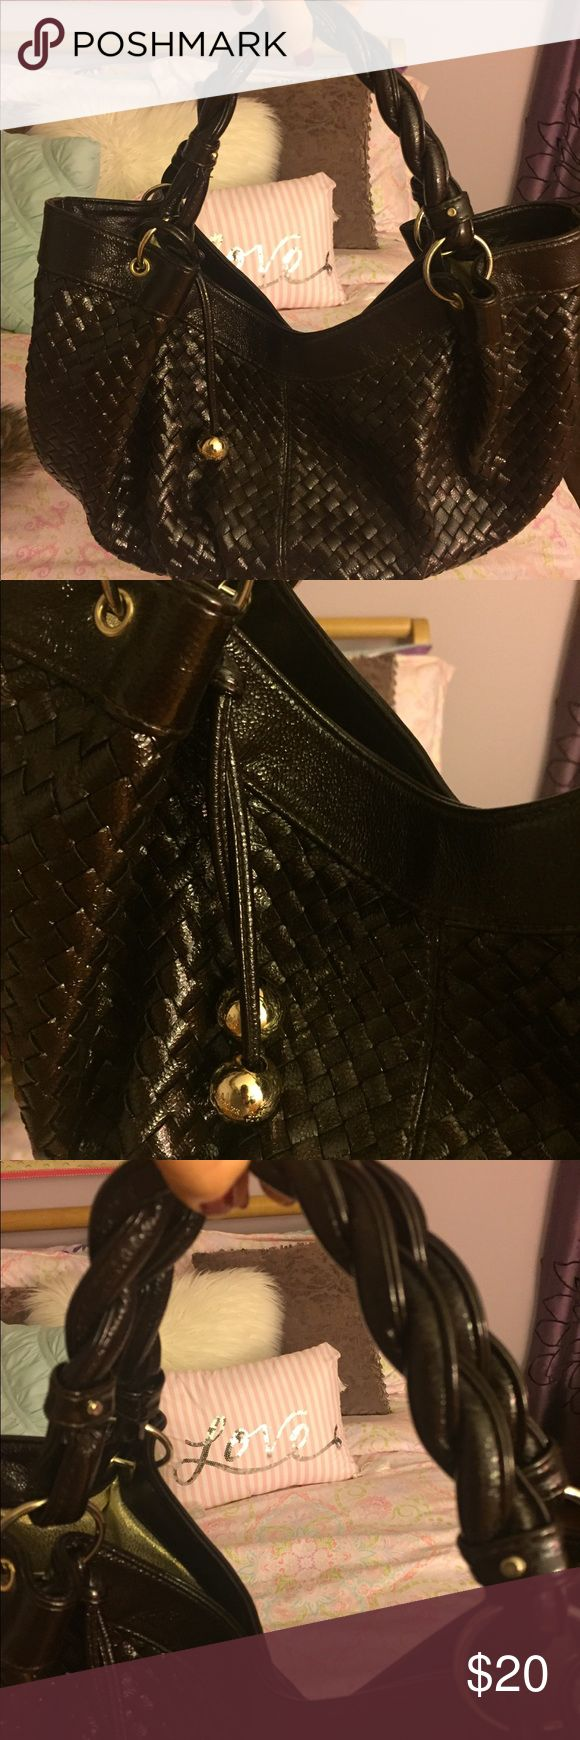 Brown weave patent hobo purse Large Vegan patent leather hobo - weave pattern - gold hardware - gold interior with inside pocket. In like new condition!!! Purchased at Target. Offers welcome. target Bags Hobos